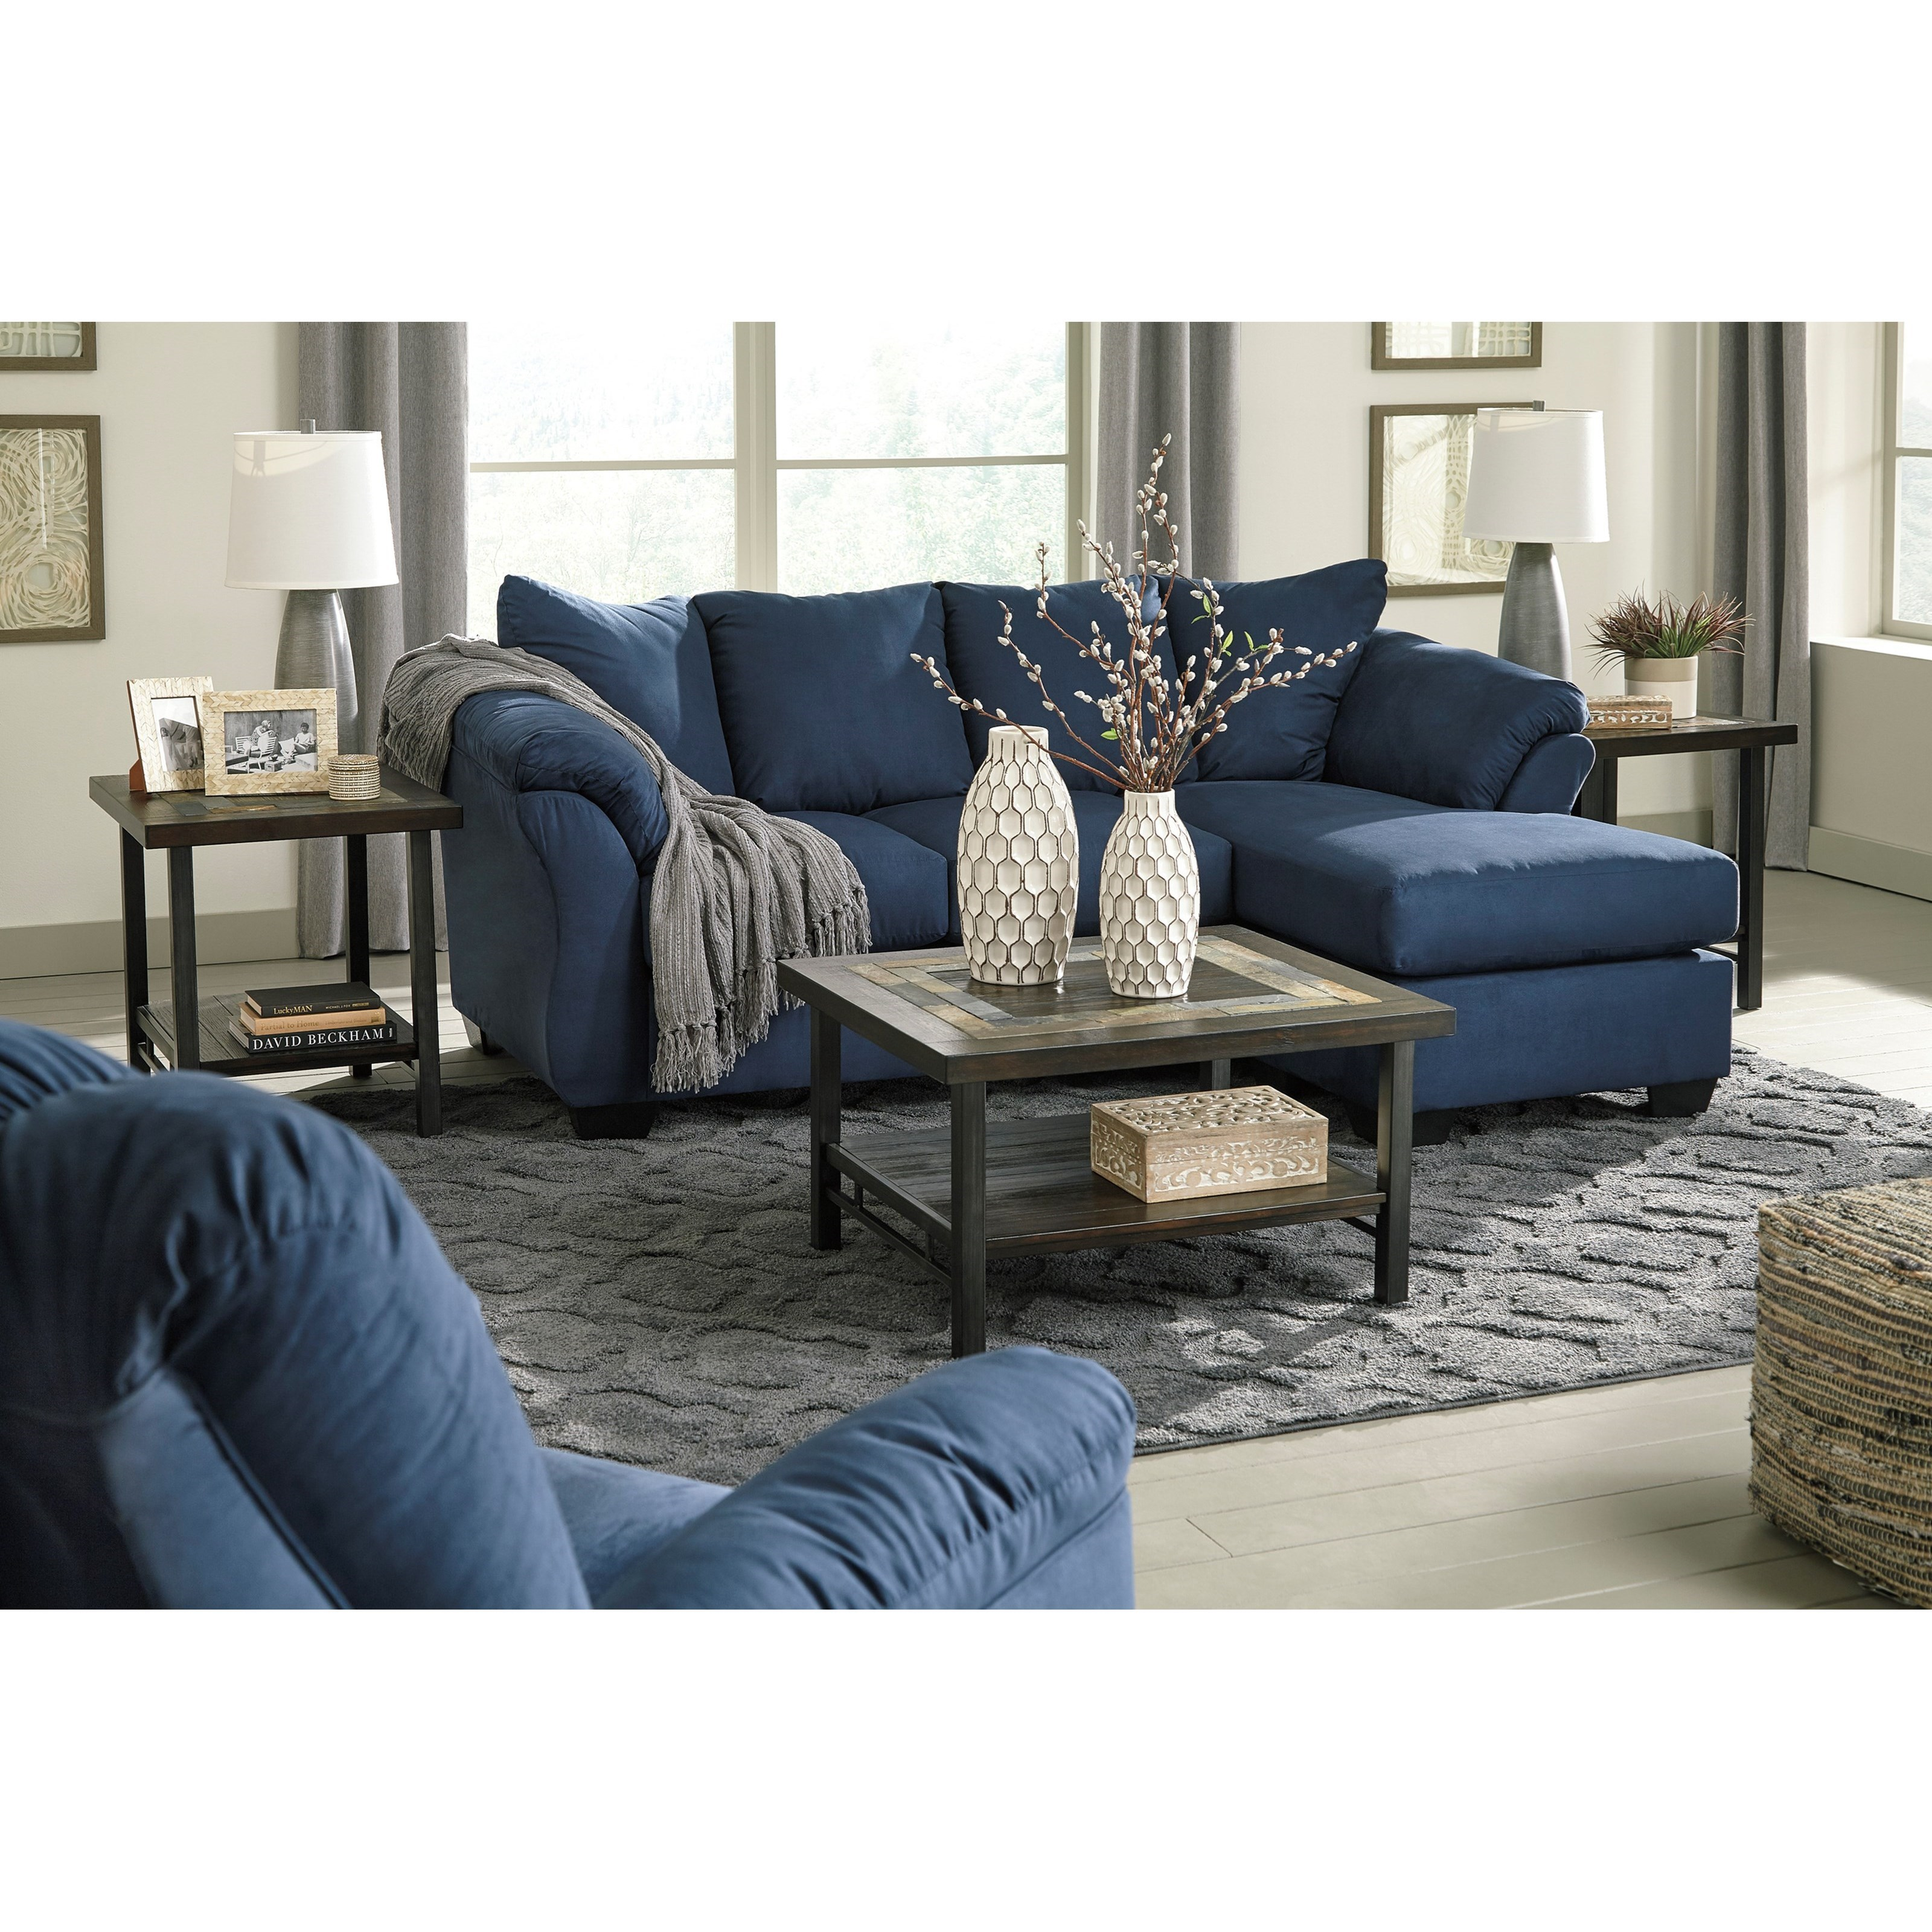 Ashley signature design darcy blue 7500718 contemporary for Blue sofa with chaise